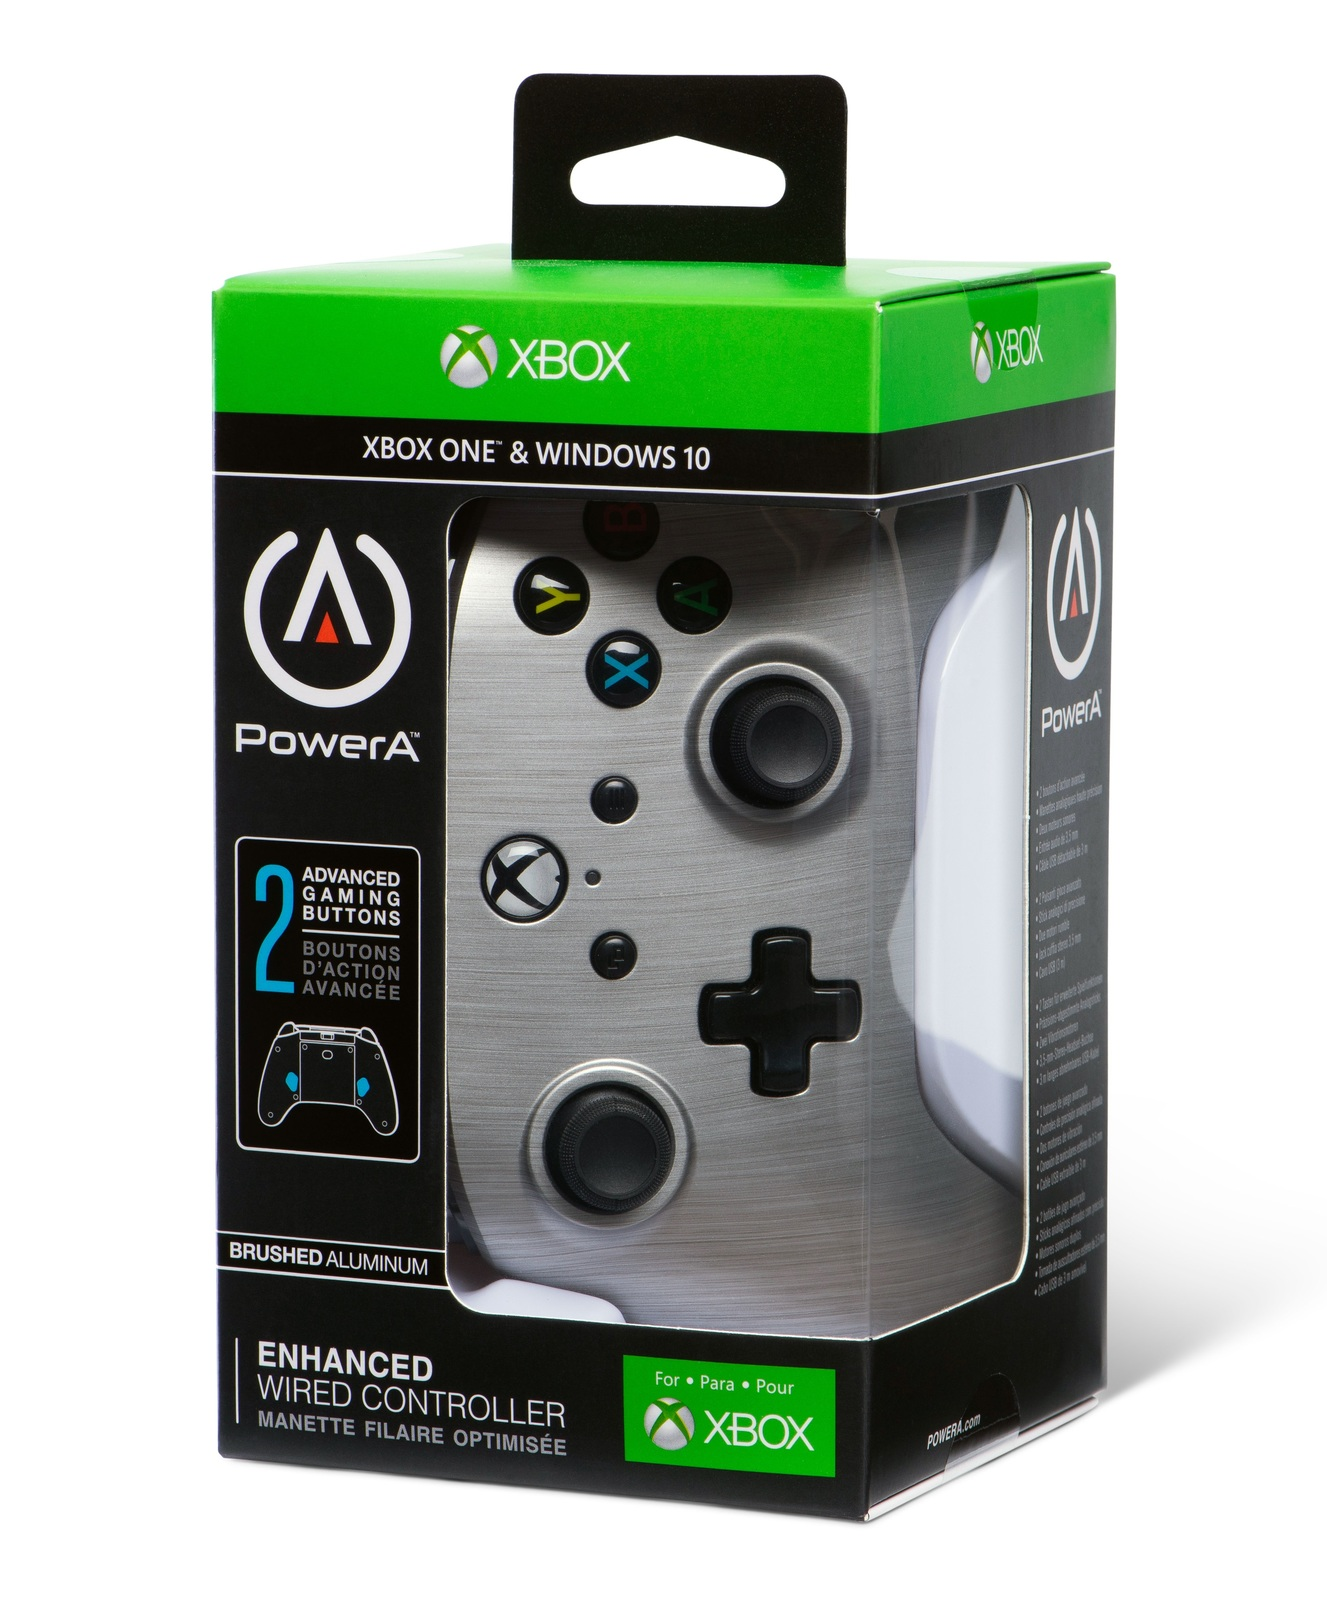 Xbox One Enhanced Wired Controller - Brushed Aluminum for Xbox One image